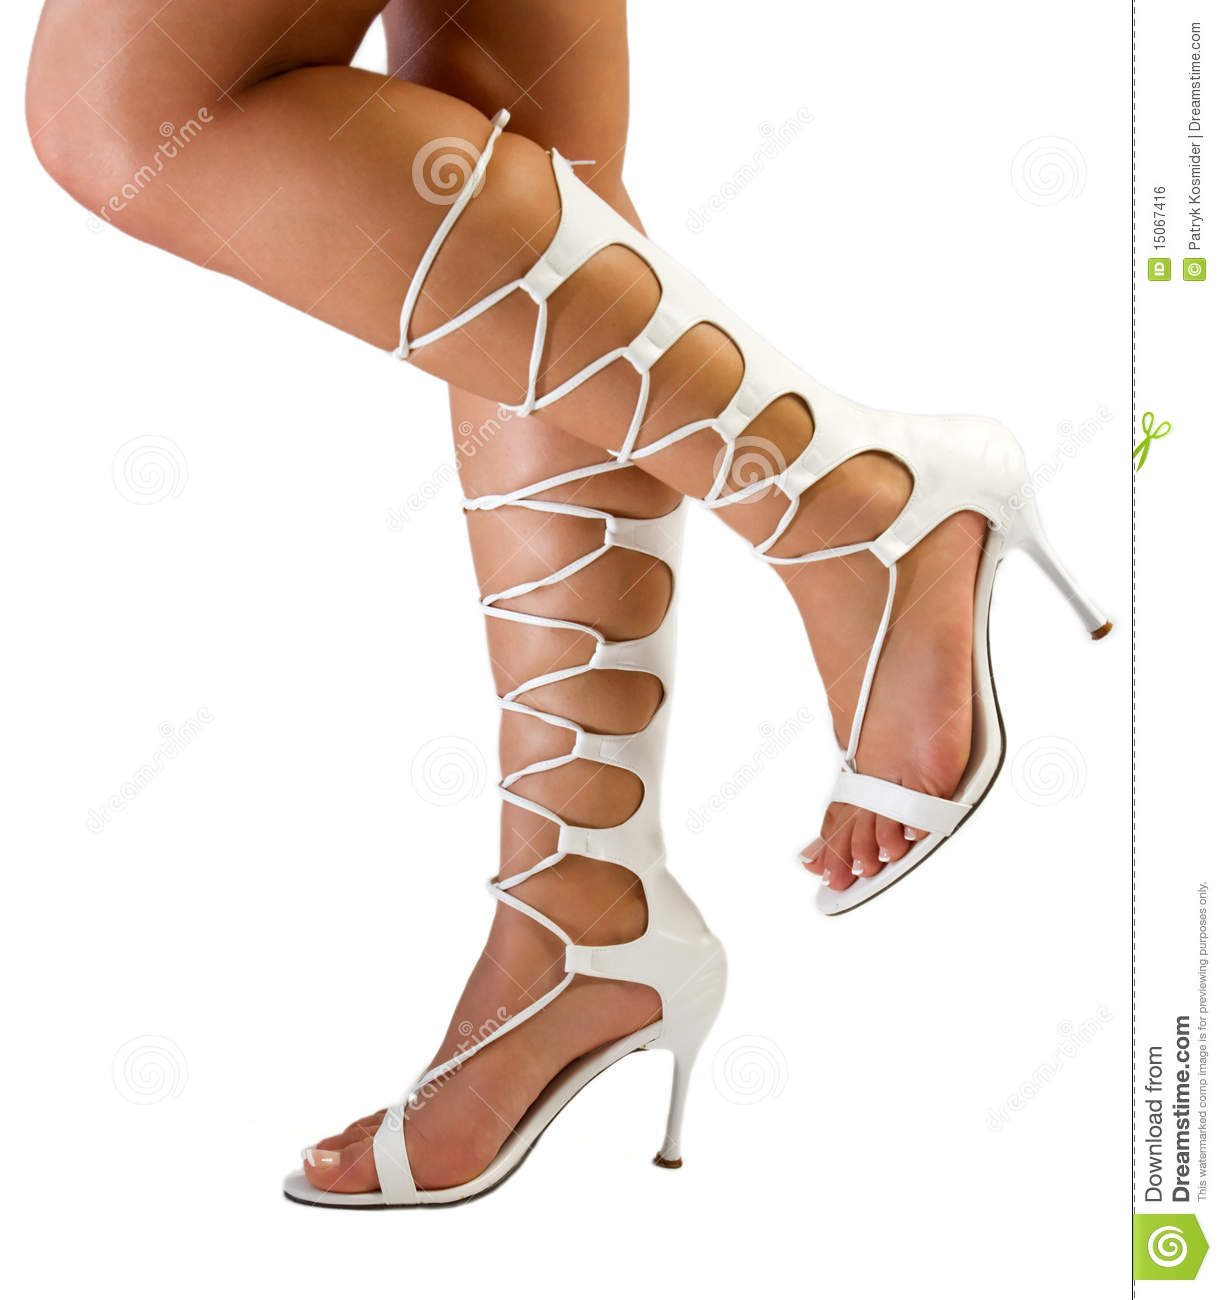 Chaussures sexy